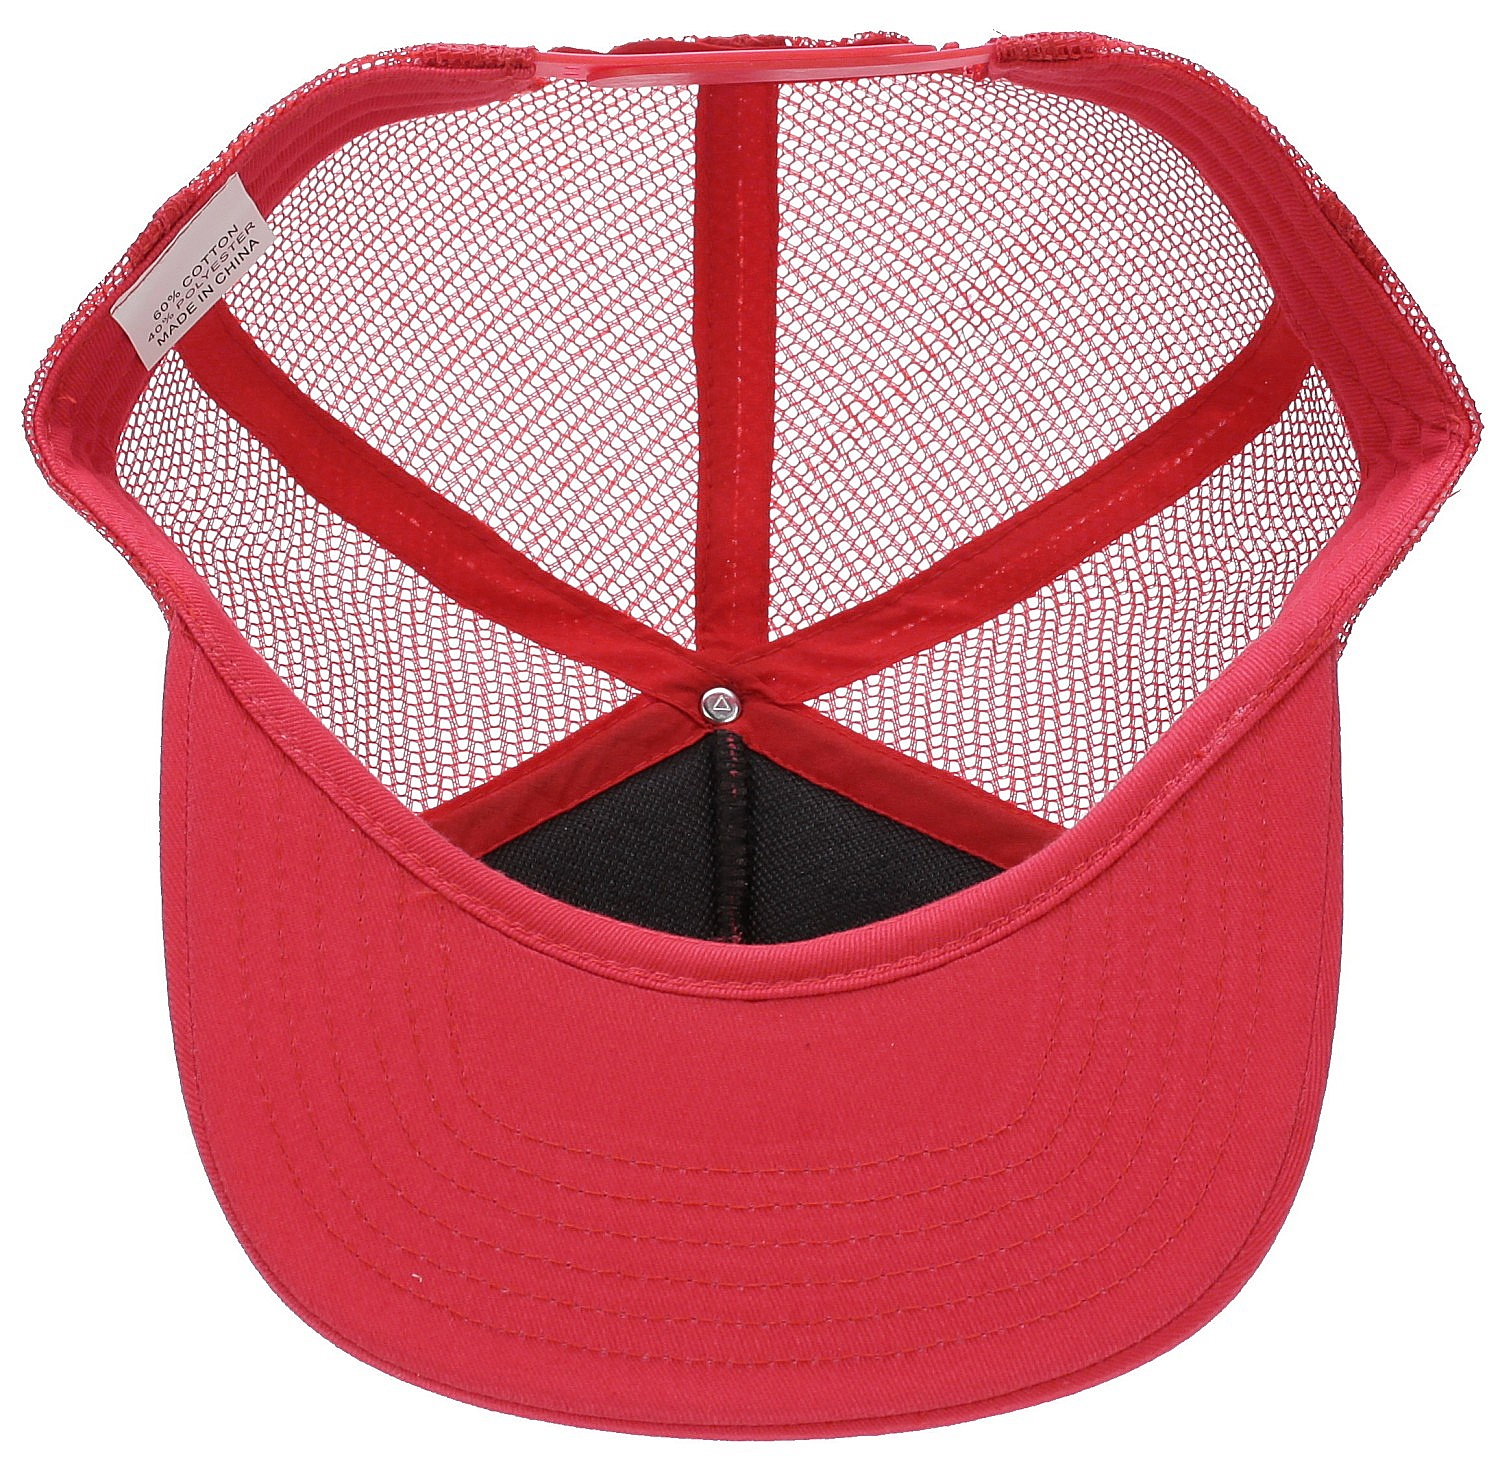 9257088f871 cap Thrasher Embroidered Skategoat Mesh - Red - Snowboard shop ...